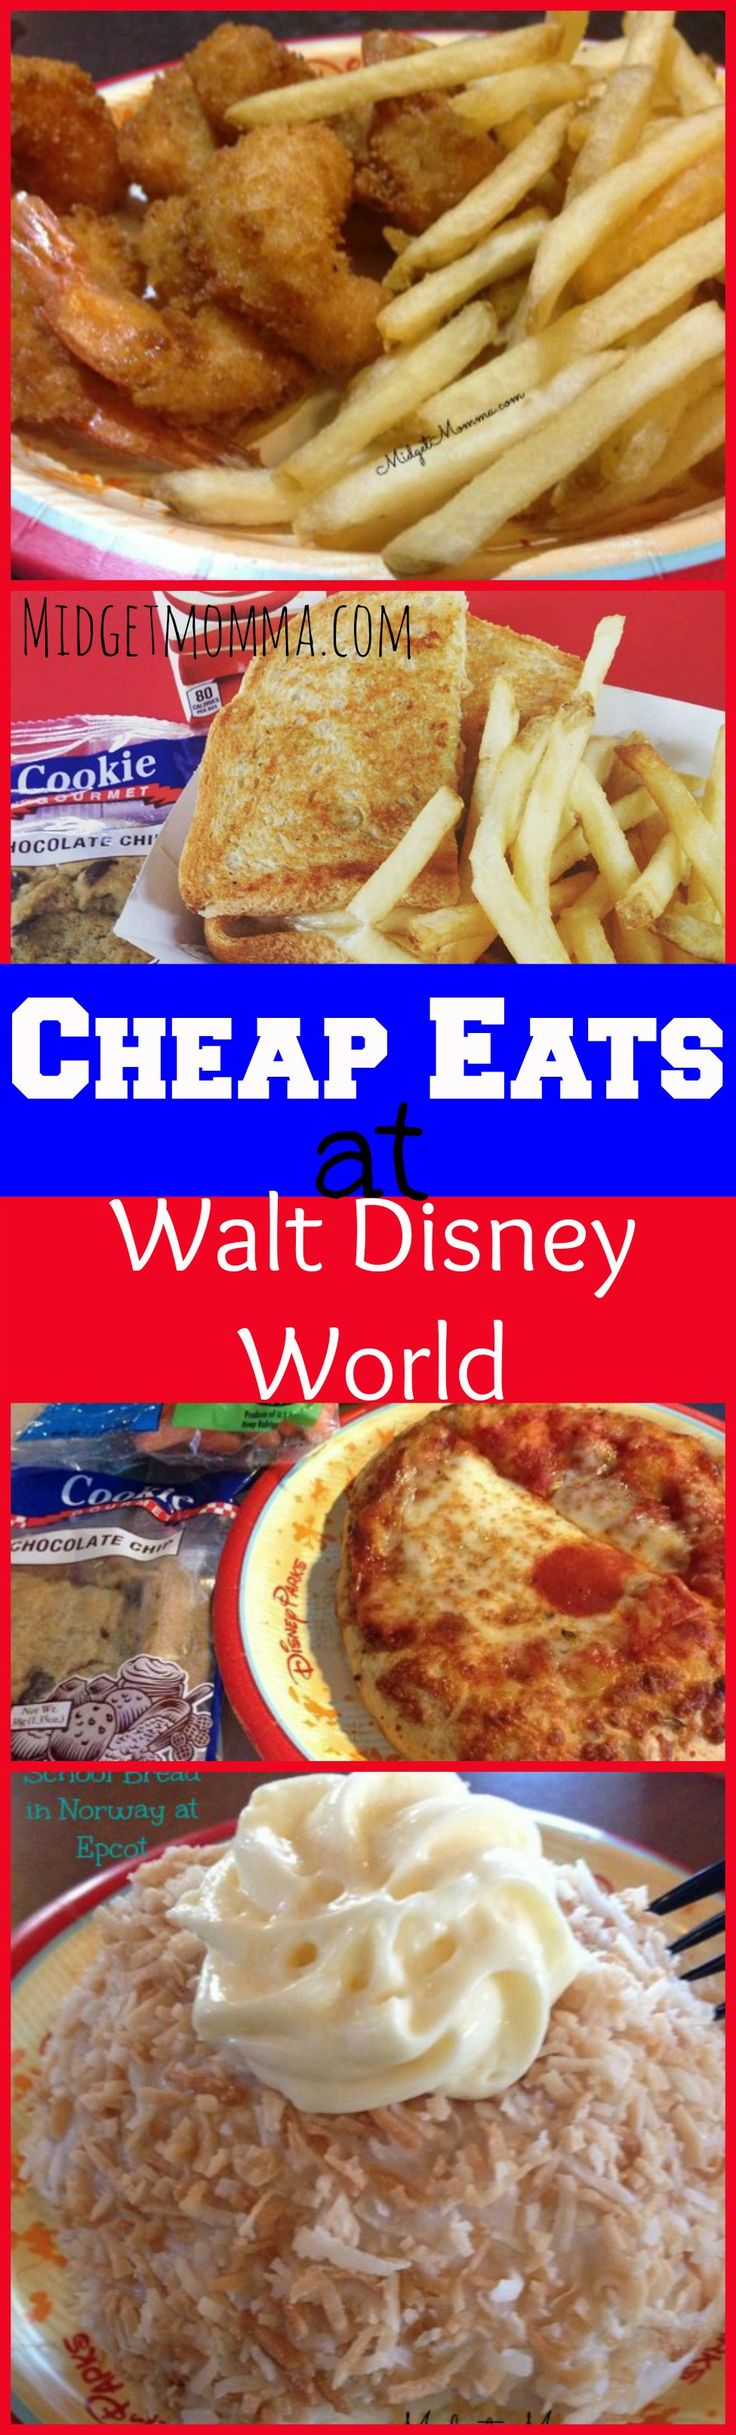 Cheap Eats at Disney World Disney food can get expensive but with these Cheap Eats at Disney World you can eat AMAZINGLY and not break the budget! These Cheap Eats at Disney World are amazingly tasty and amazingly easy on the wallet.